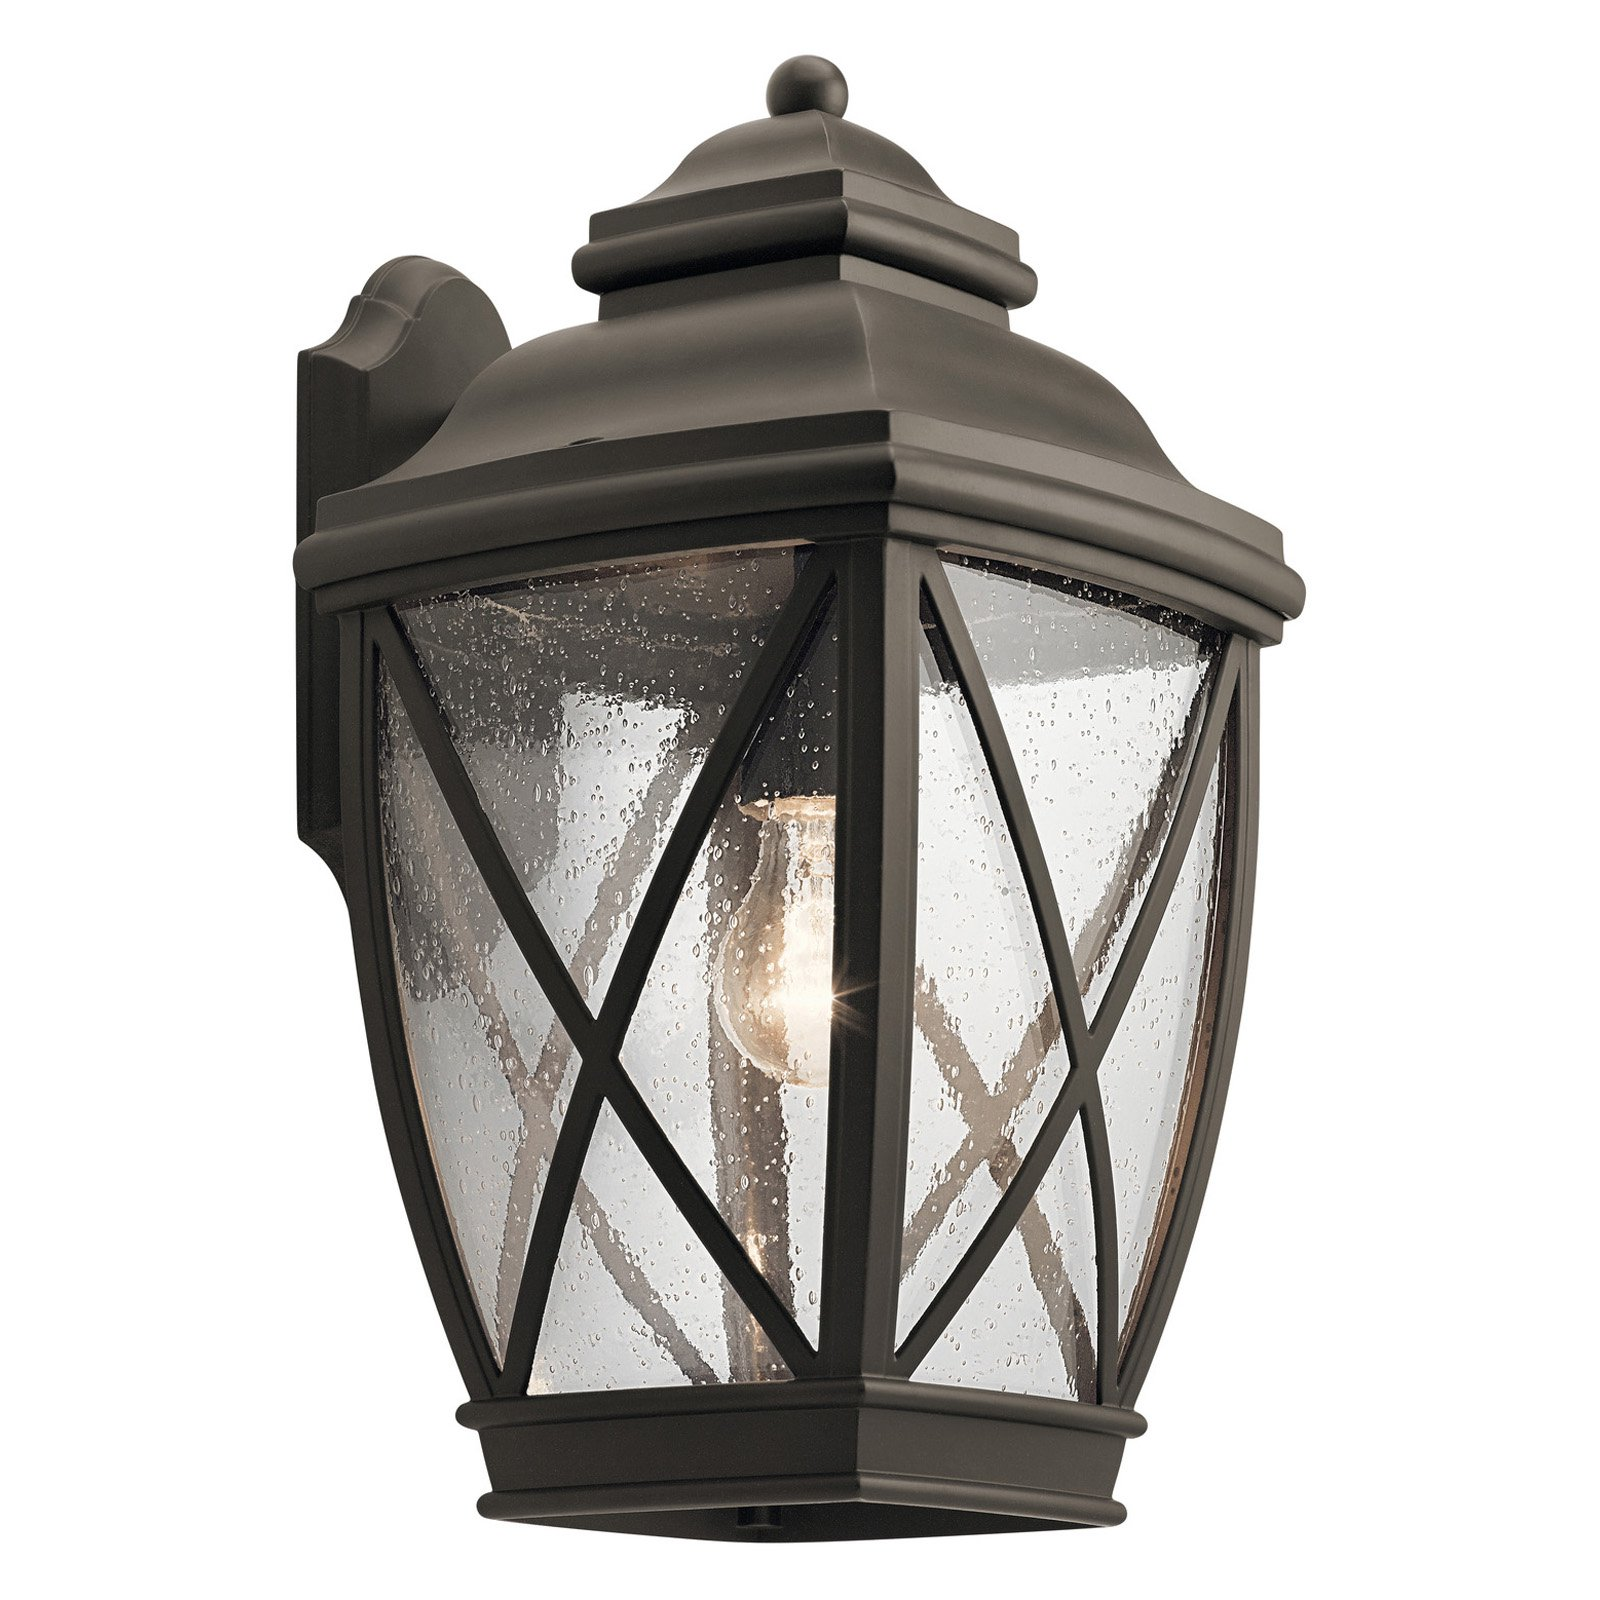 Kichler Tangier Outdoor Wall Light